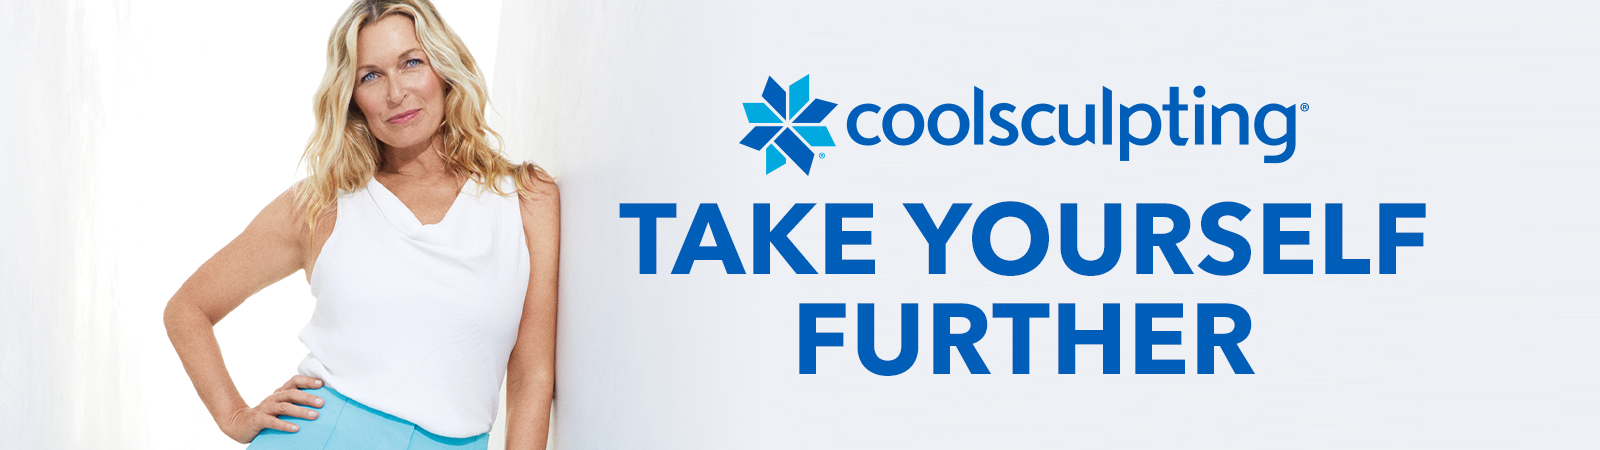 CoolSculpting in Pewaukee, WI